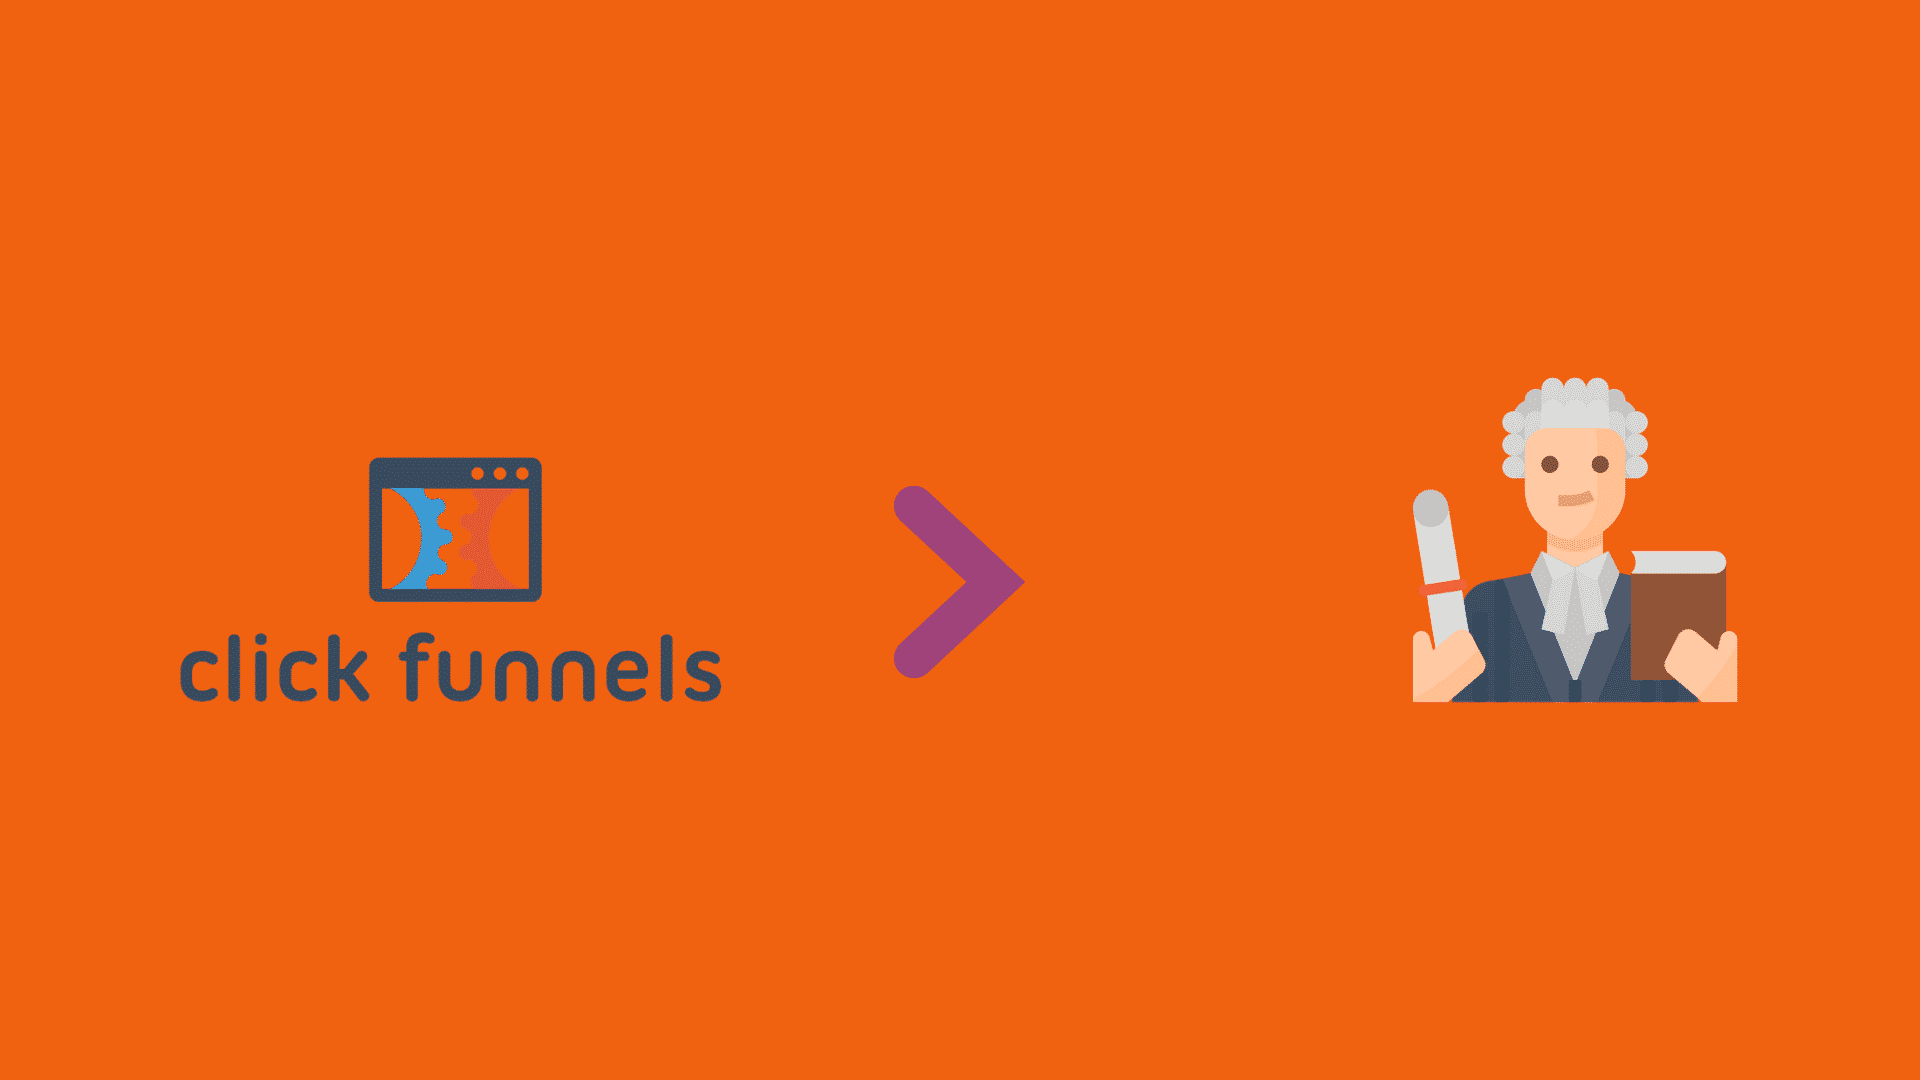 ClickFunnels Work for Lawyers